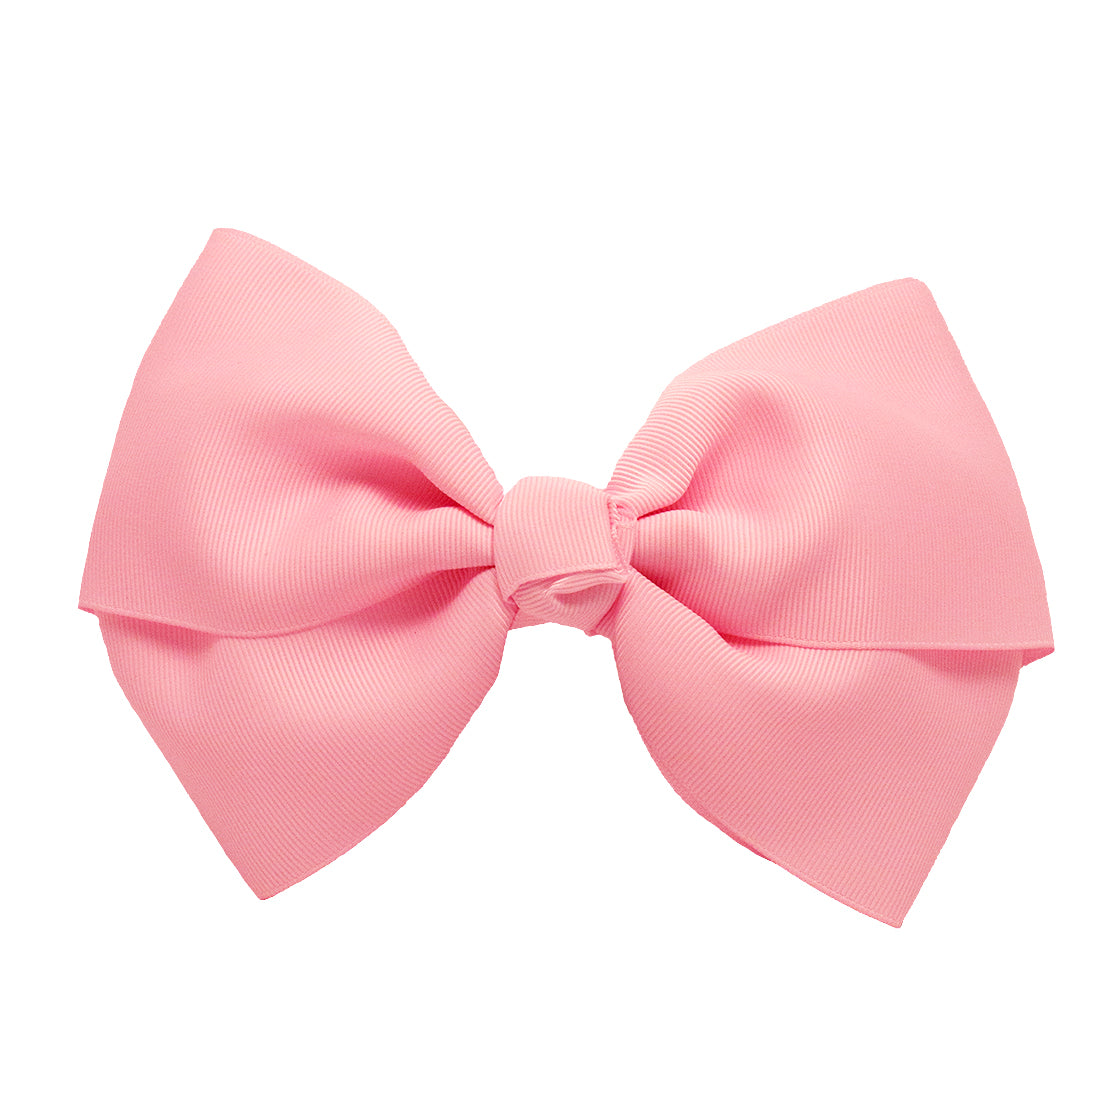 Mia Spirit Extra Large Grosgrain Bow Barrette - light pink color - designed by #MiaKaminski of Mia Beauty